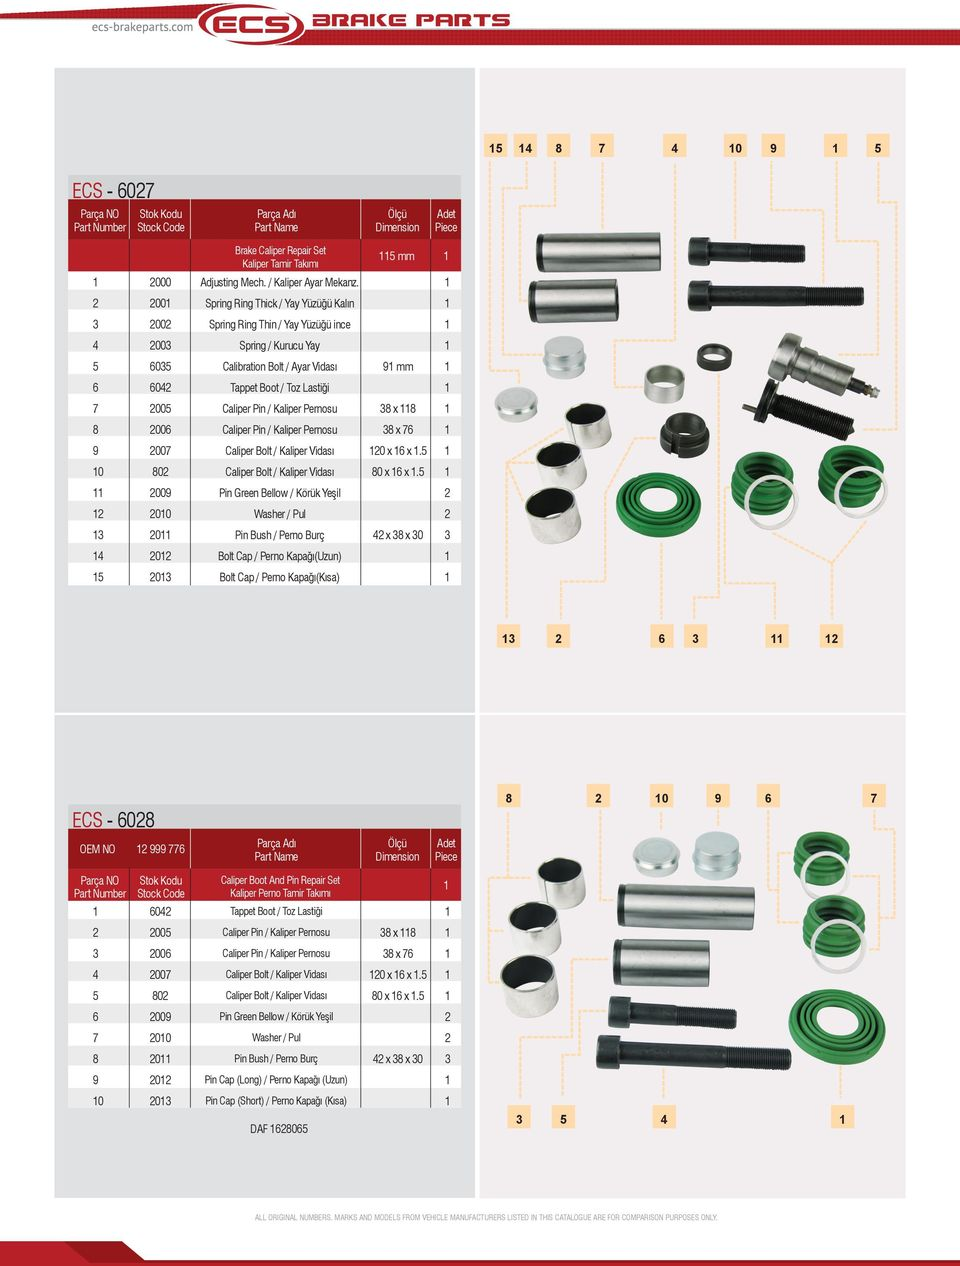 00 00 0 x x 0 0 Bolt Cap / Perno Kapağı(Uzun) 0 Bolt Cap / Perno Kapağı(Kısa) ECS - 0 0 OEM NO 0 Caliper Boot And Pin Repair Set Kaliper Perno